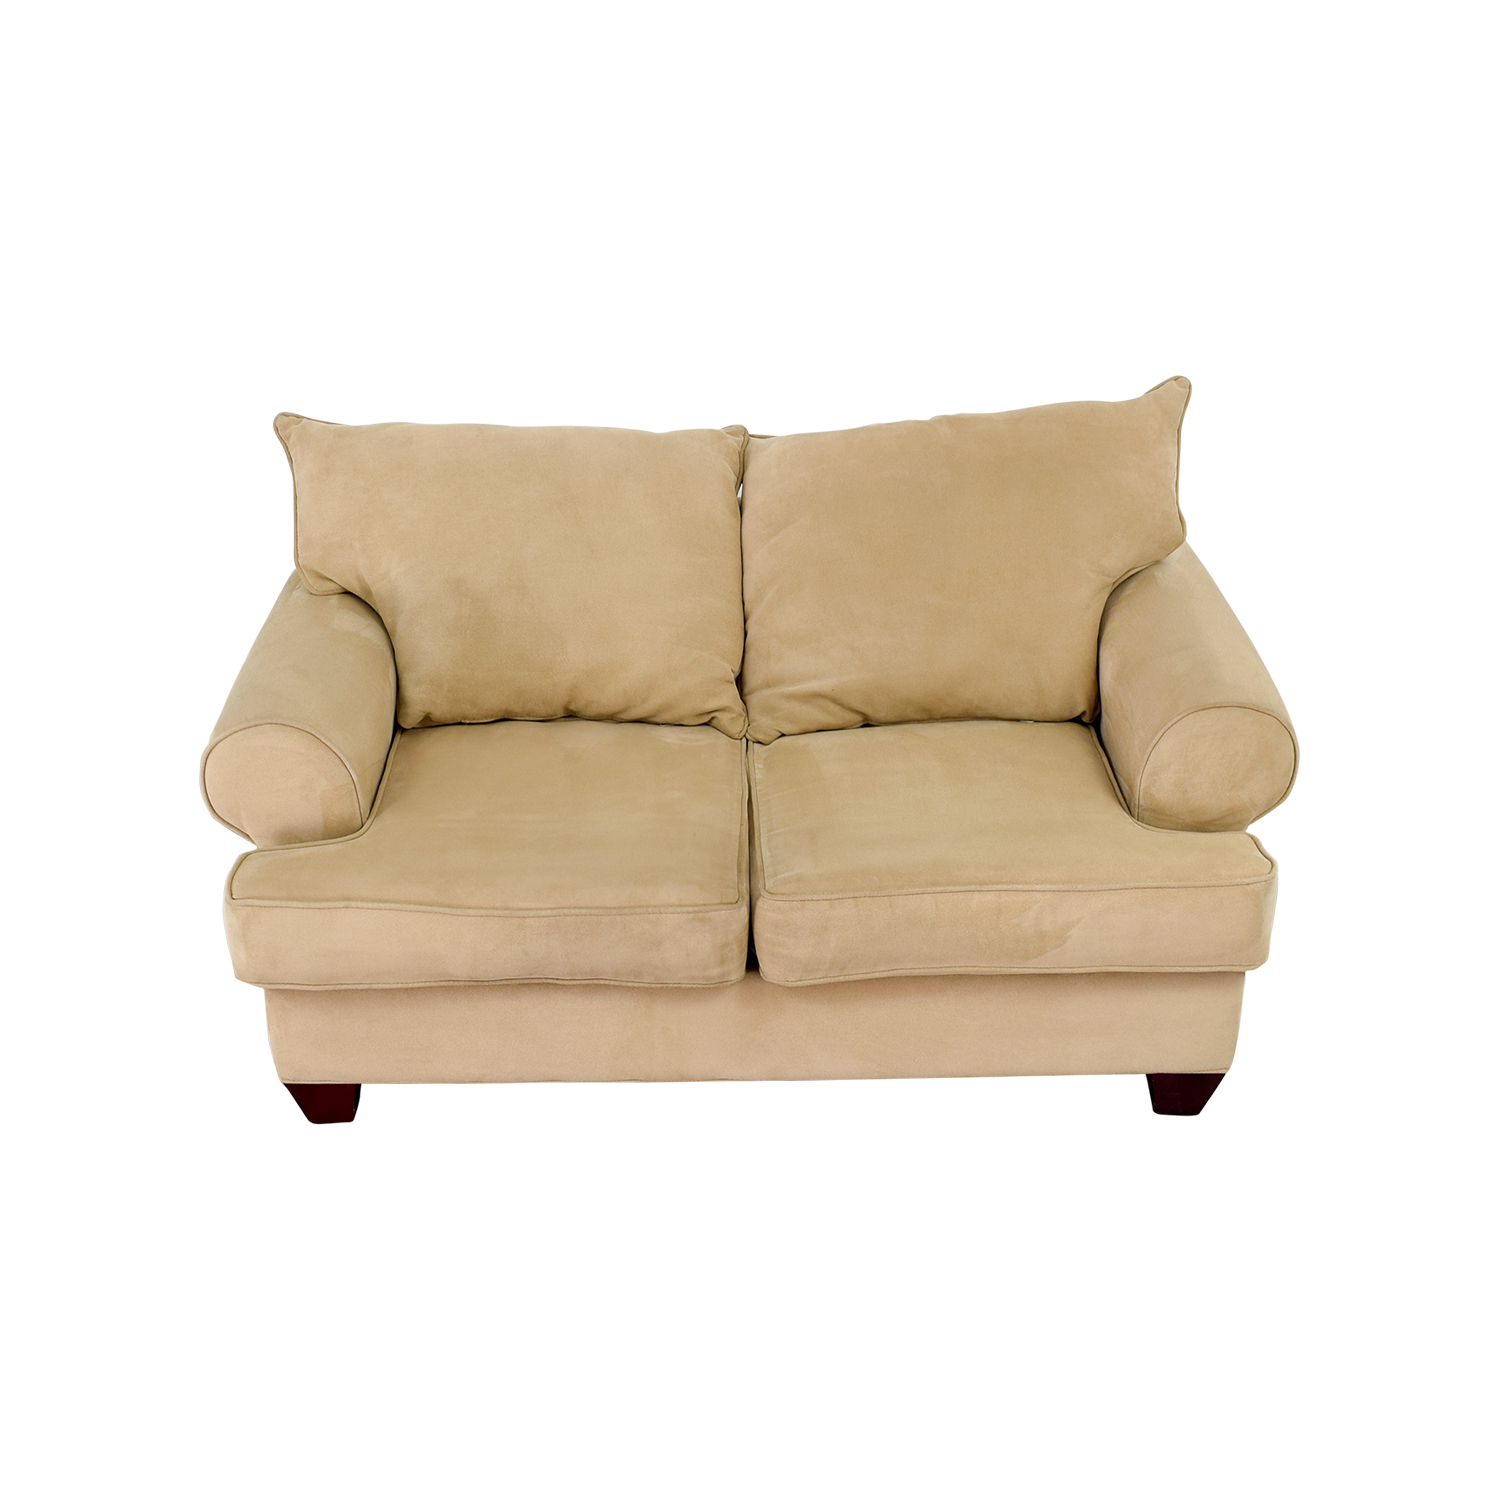 Bobs Furniture Beige Two-Cushion Love Seat / Loveseats